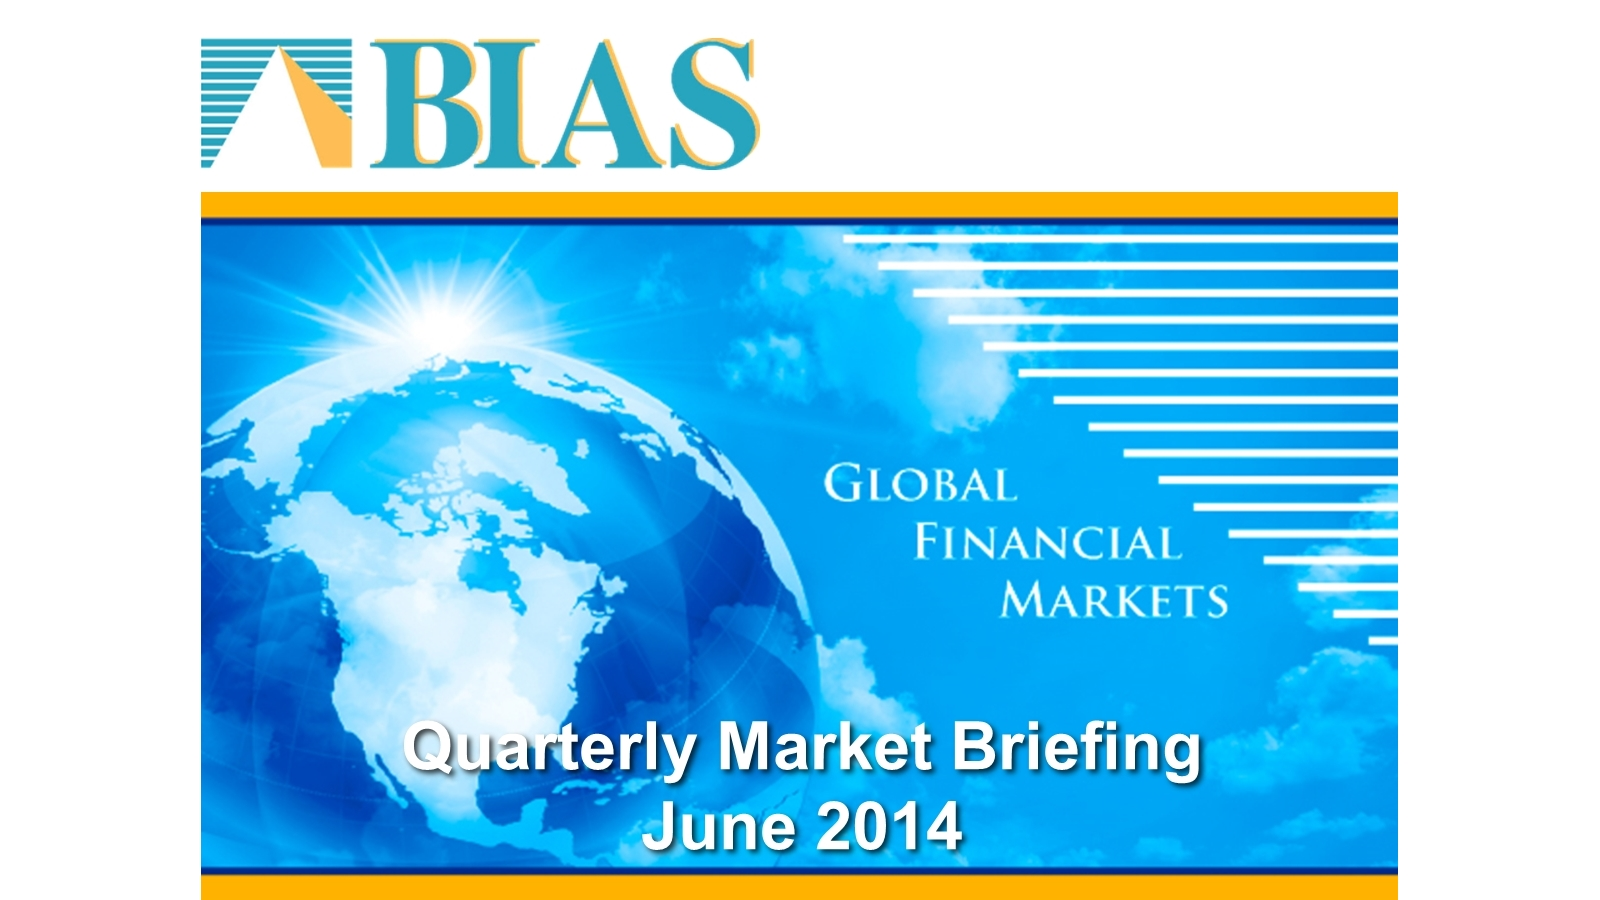 BIAS Quarterly Market Briefing -- 2014 Quarter 2